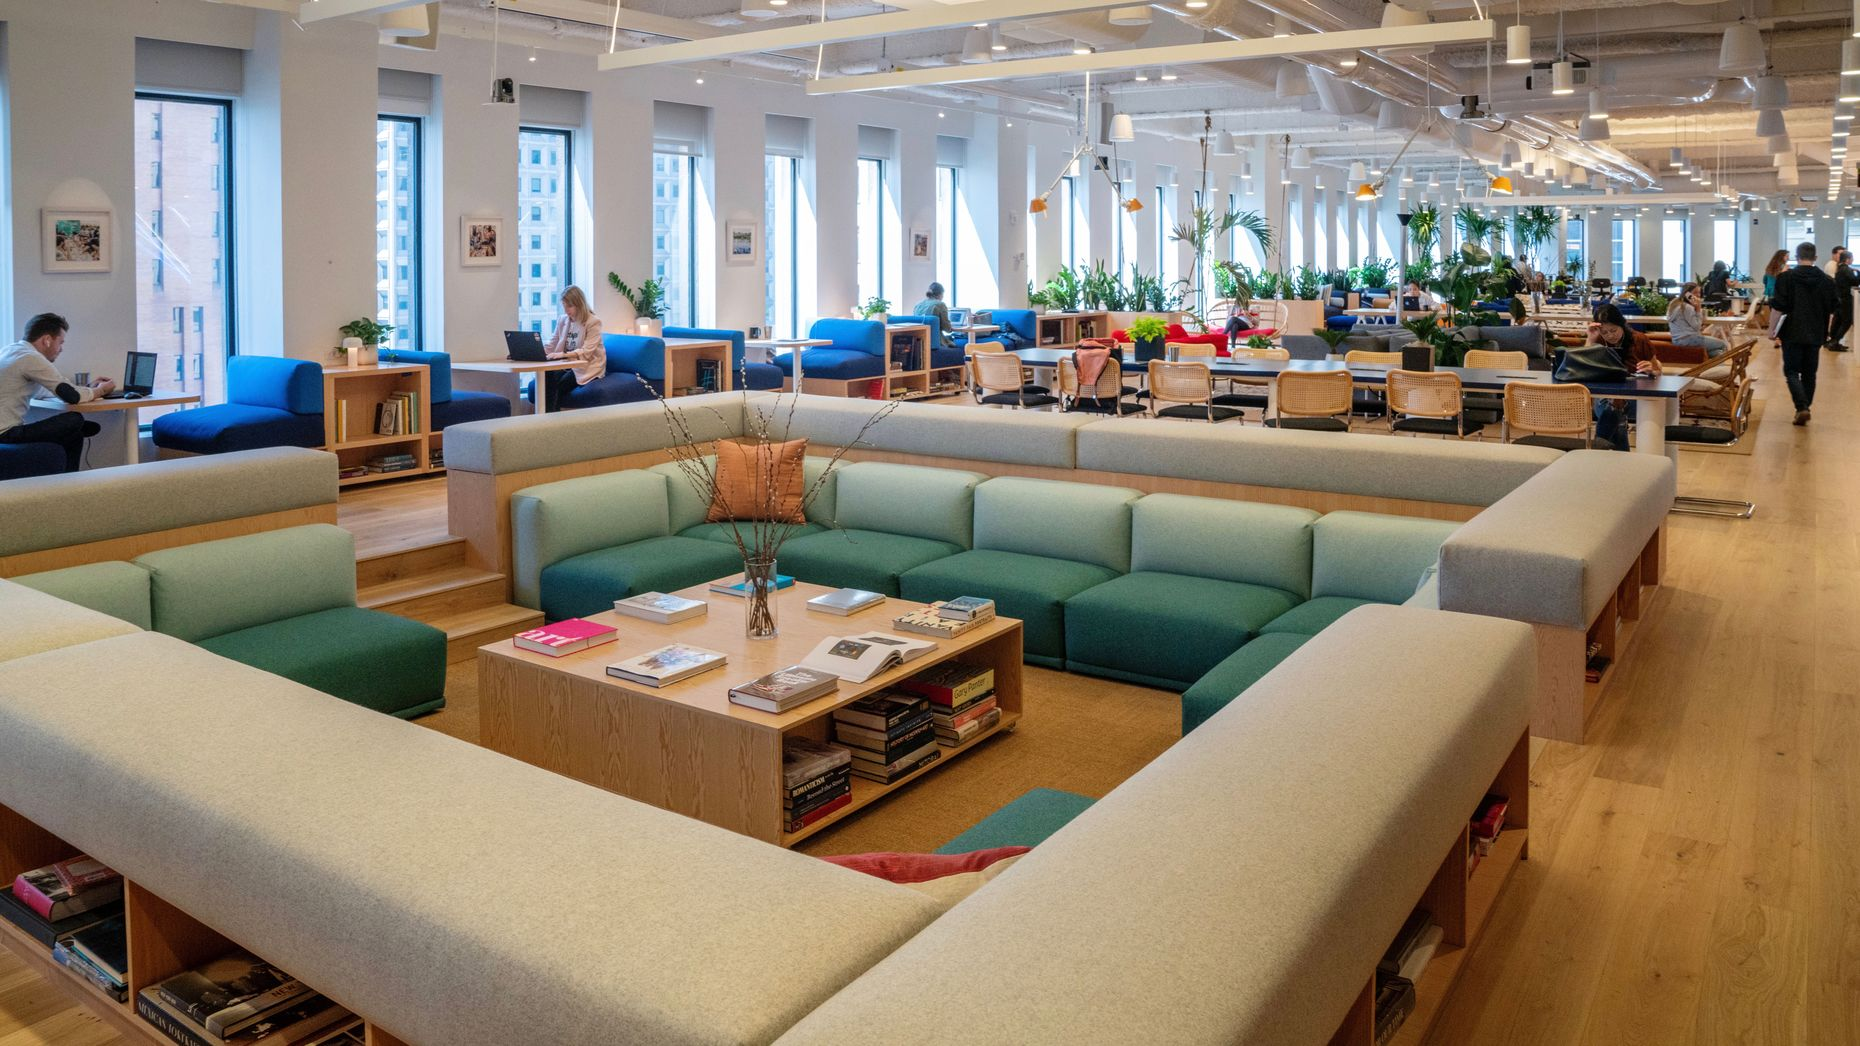 A WeWork co-working space. Photo by Bloomberg